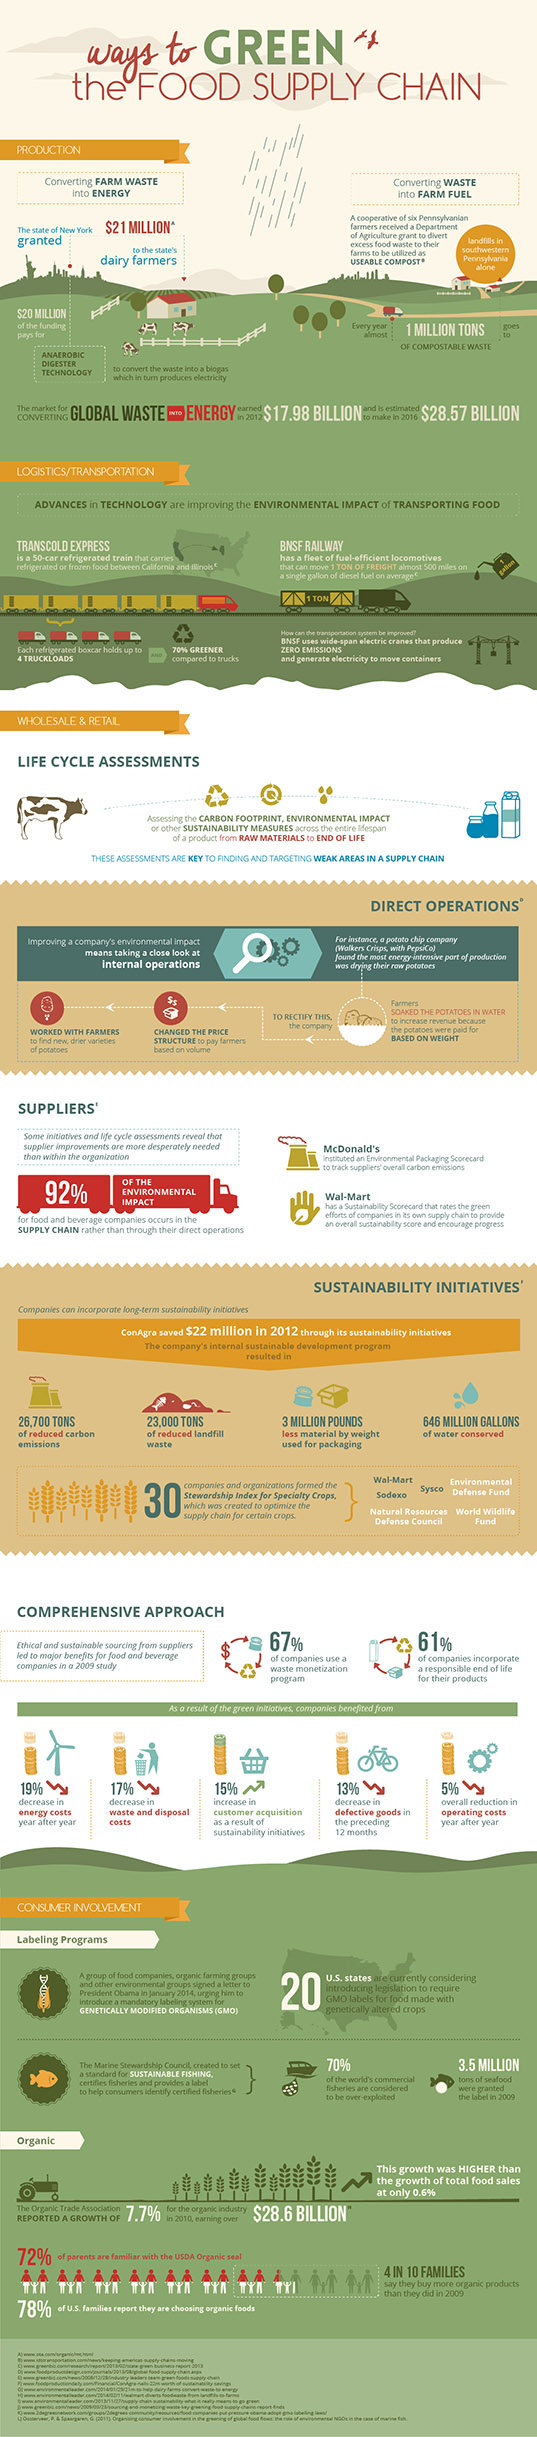 Food supply chain, green food supply chain, food environmental impact, food supply, environmentally friendly eating, sustainable food, sustainable food supply chain, sustainable living, Marylhurst infographic, infographic, reader submitted content, living green, eating green